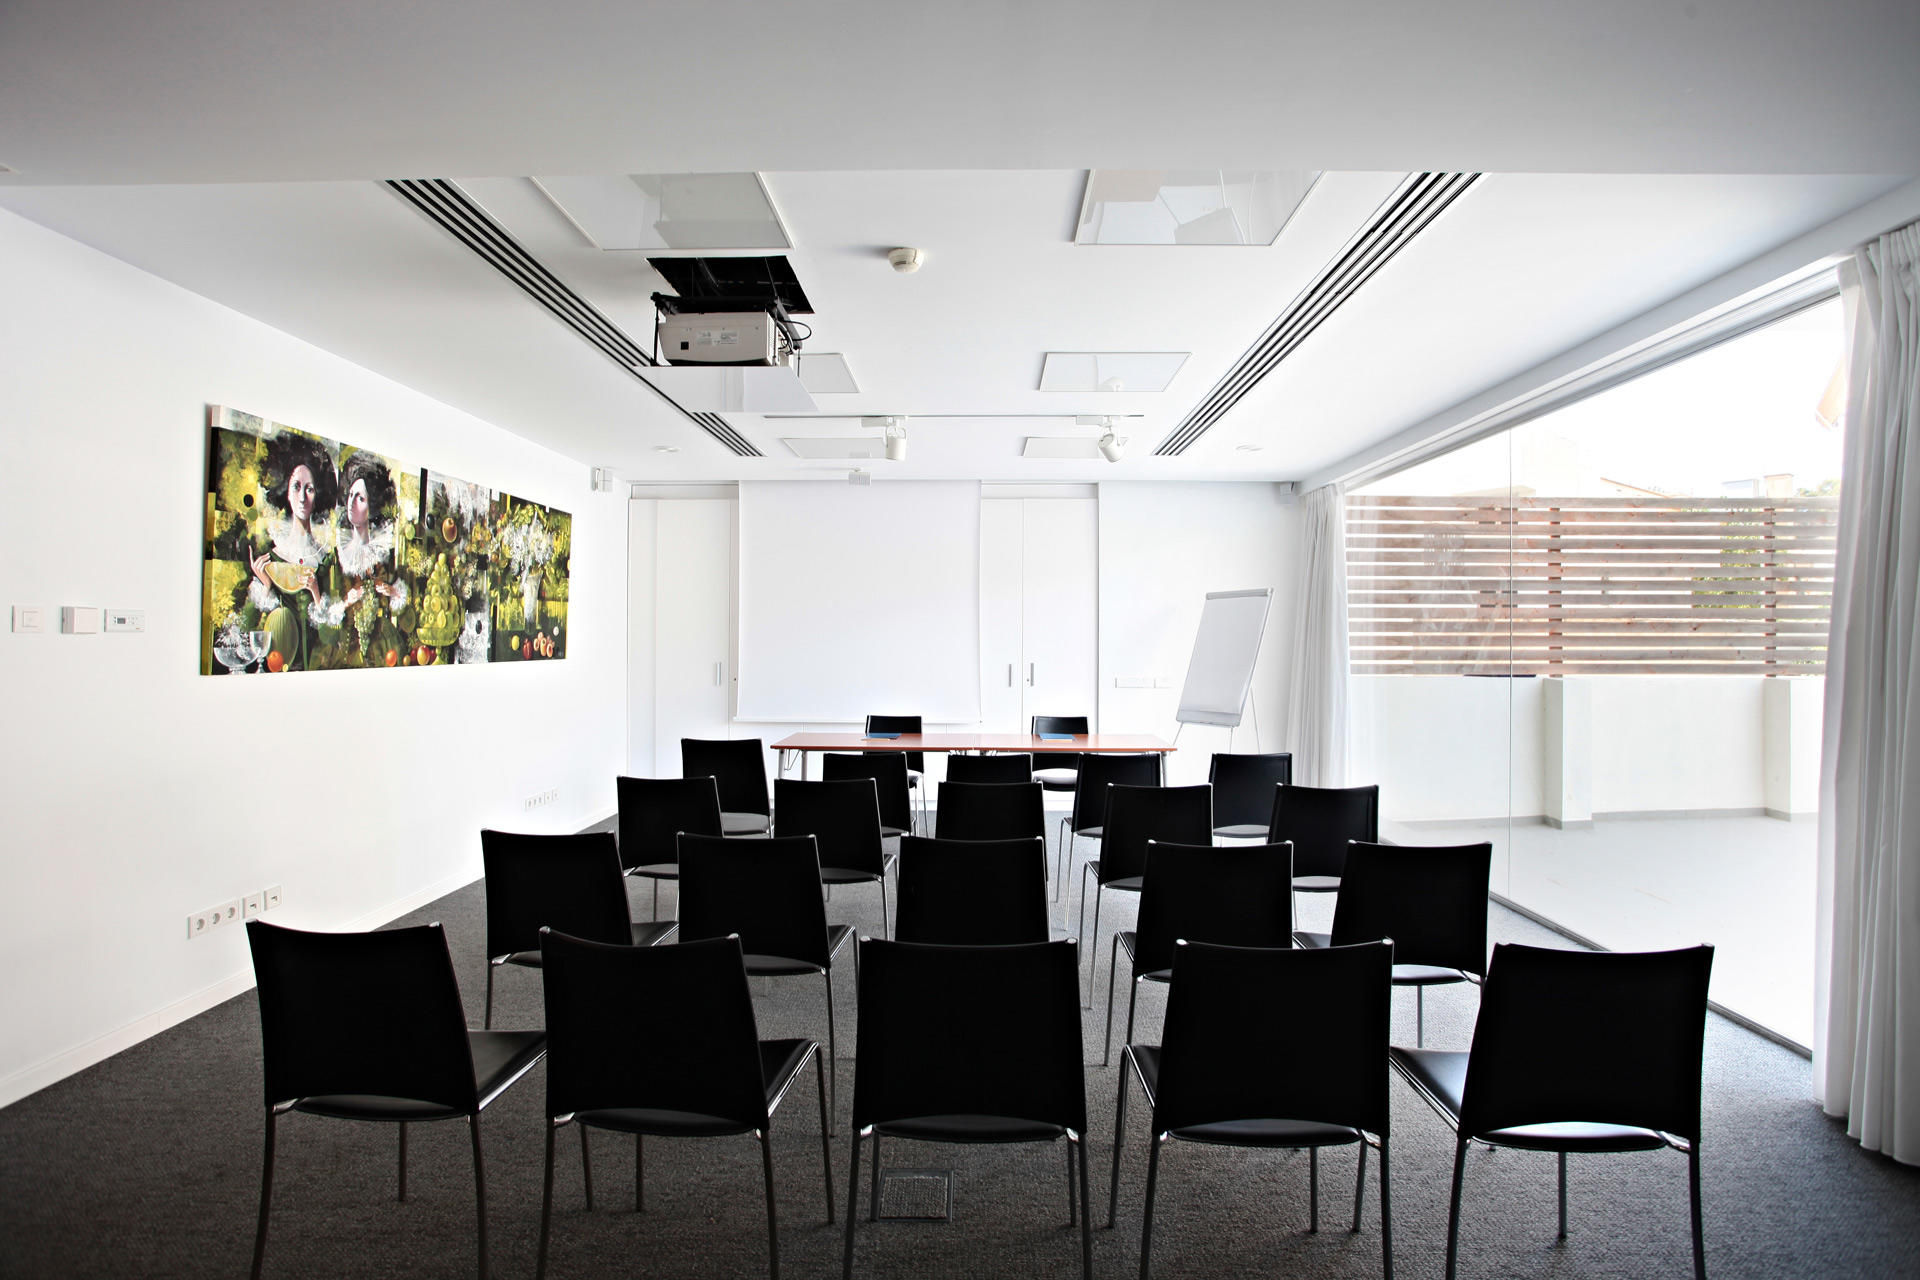 Conference room at Aimia Hotel in Port de Sóller, Majorca